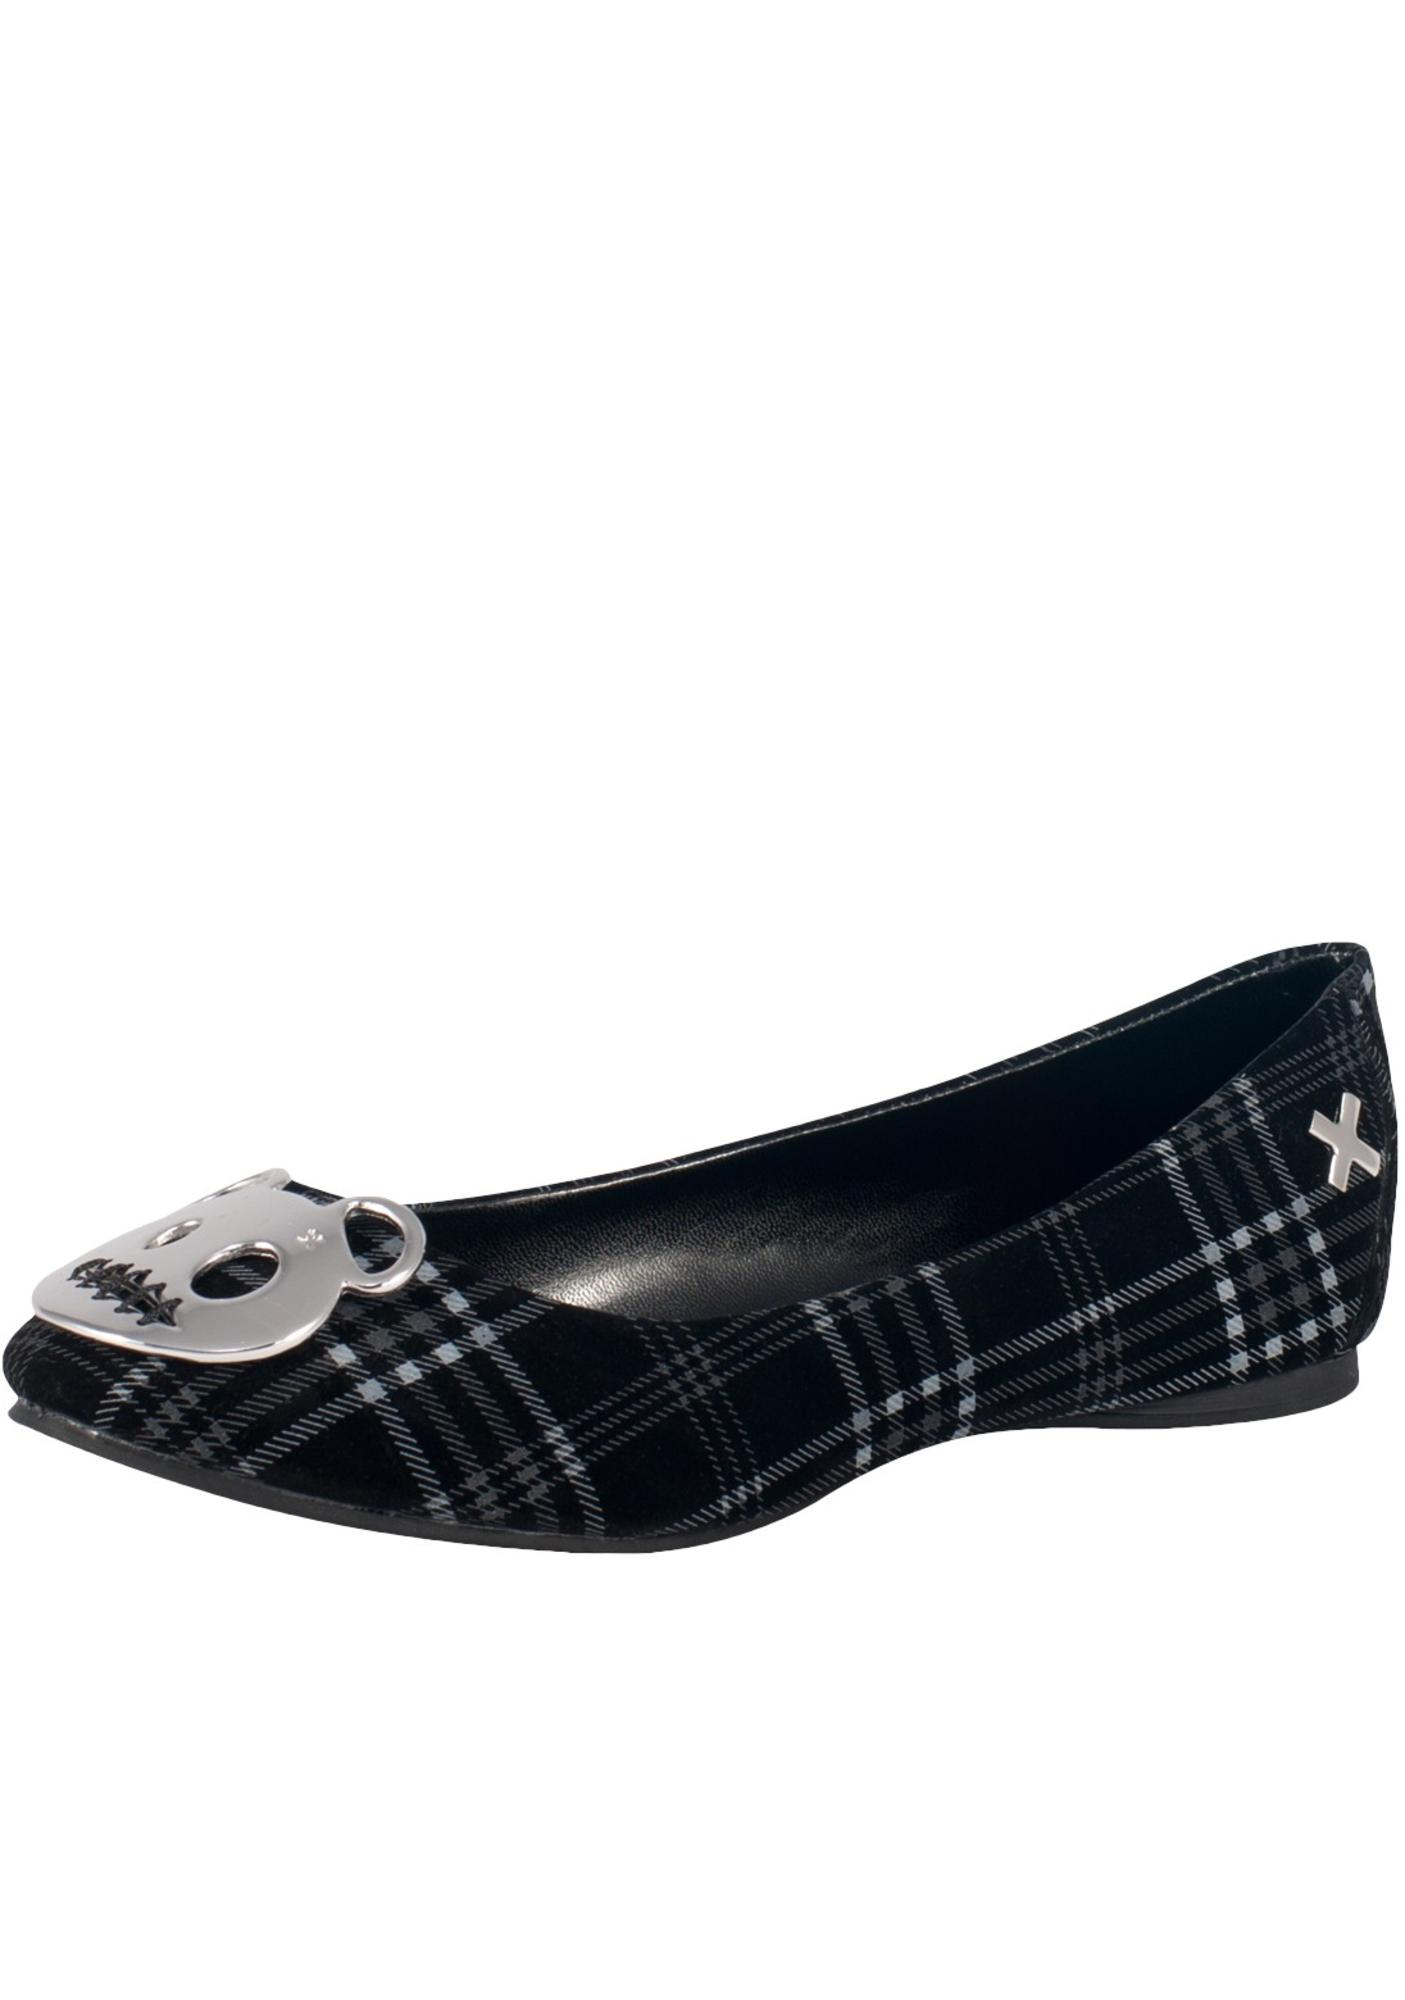 T.U.K. Velvet Plaid Metal Teddy Plate Flats